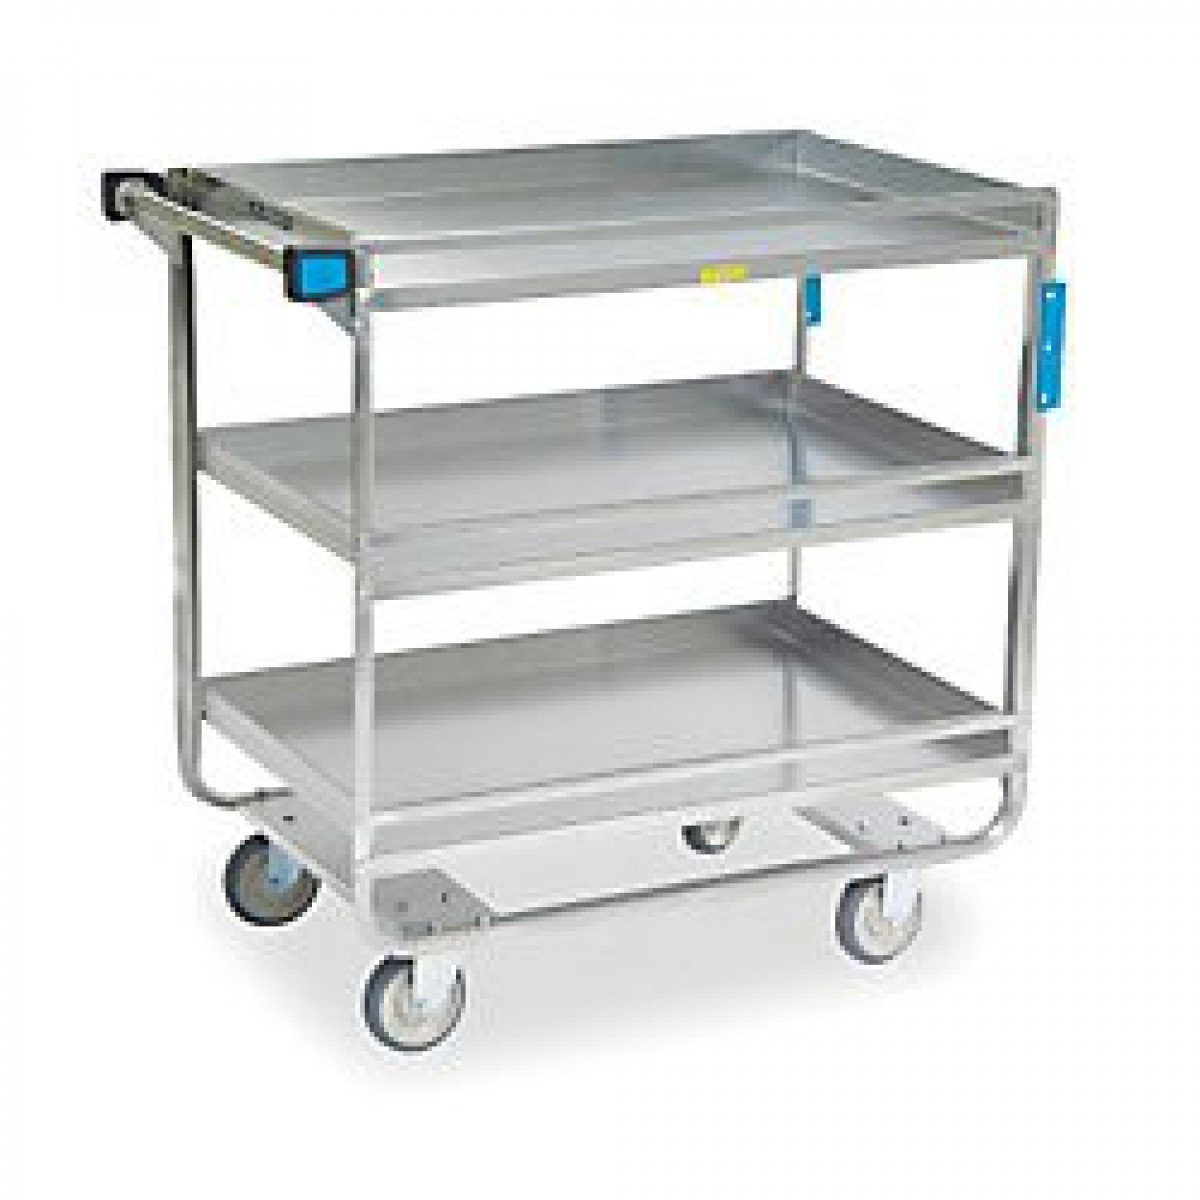 Dietary Cart LakesideReplacement Lakeside Kitchen Cart MetroPolyCasters ...